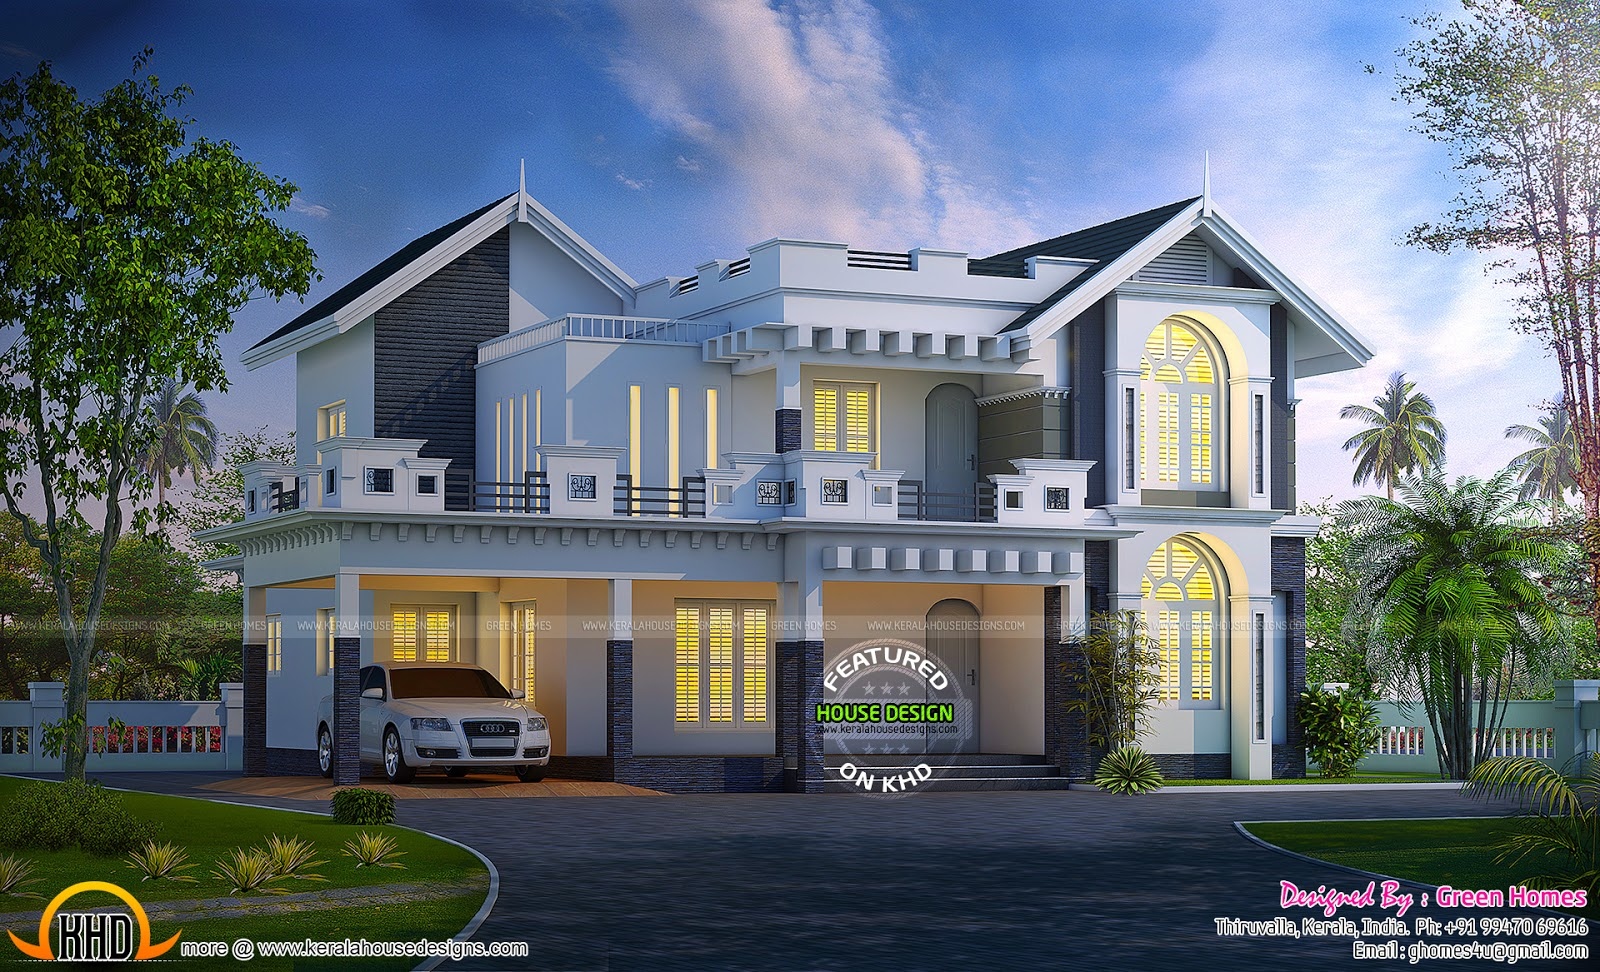 New kerala house plans for june 2015 keralahousedesigns for Latest kerala model house plans